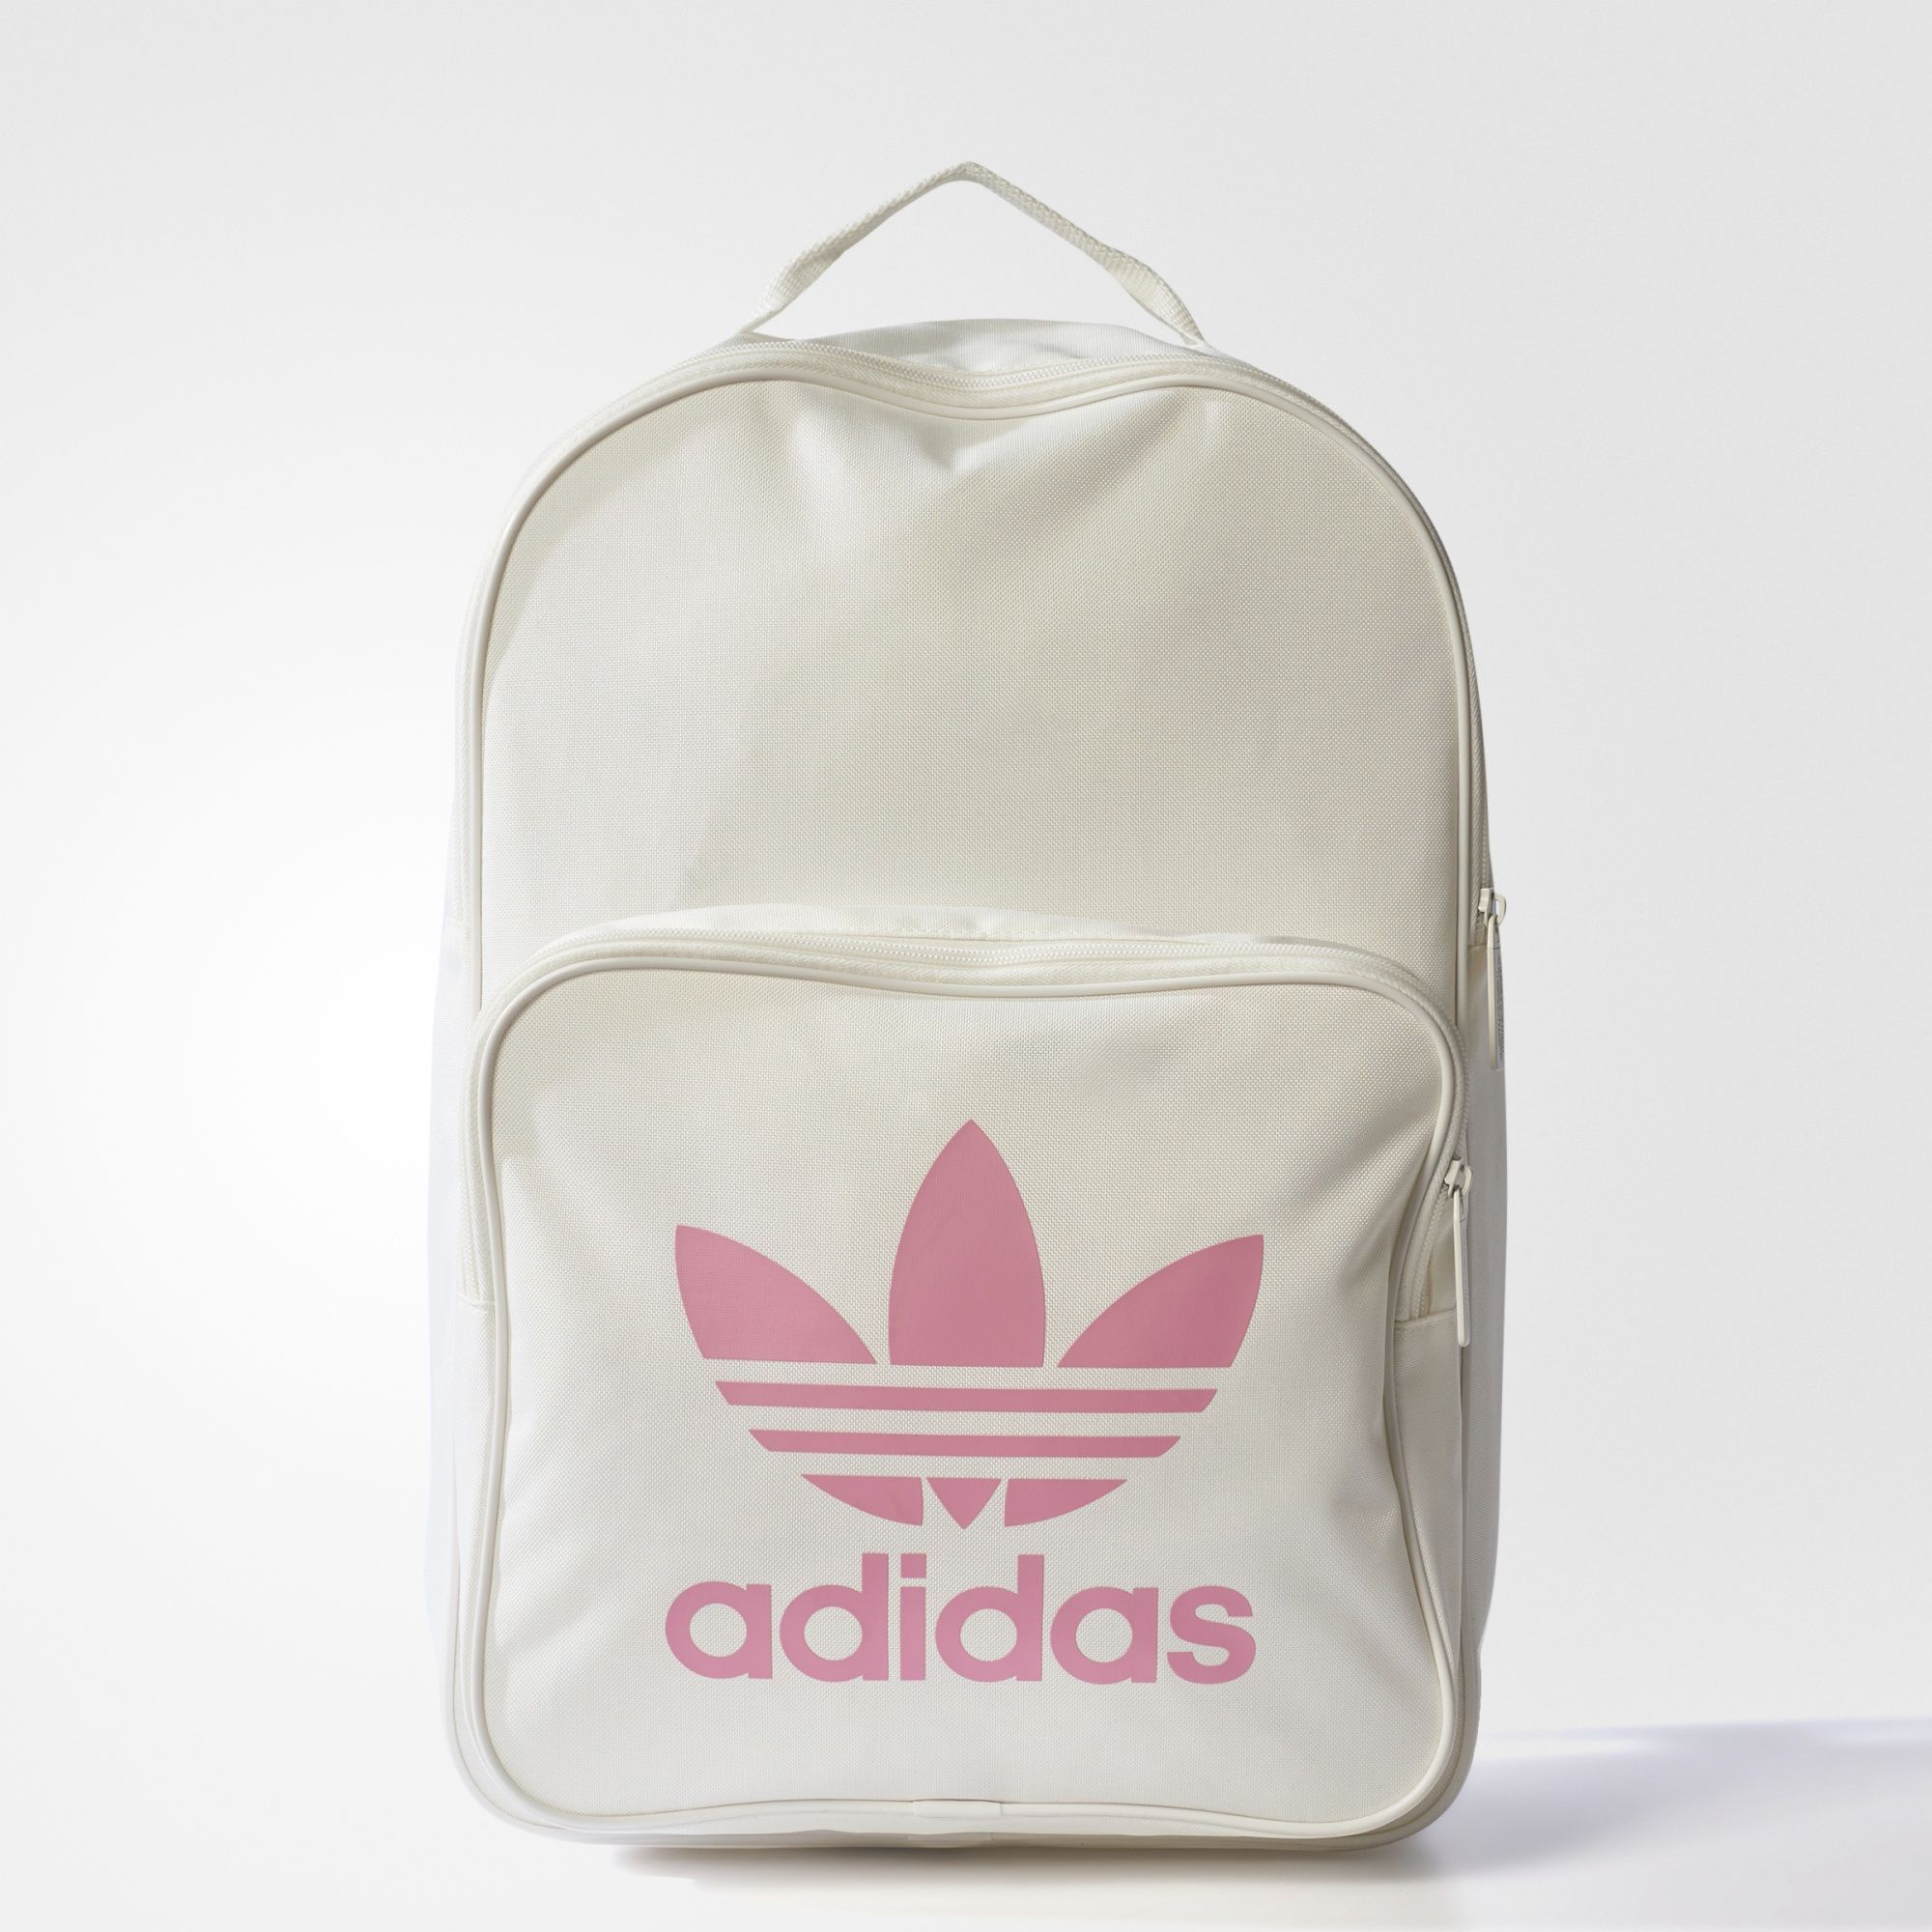 adidas elite backpack